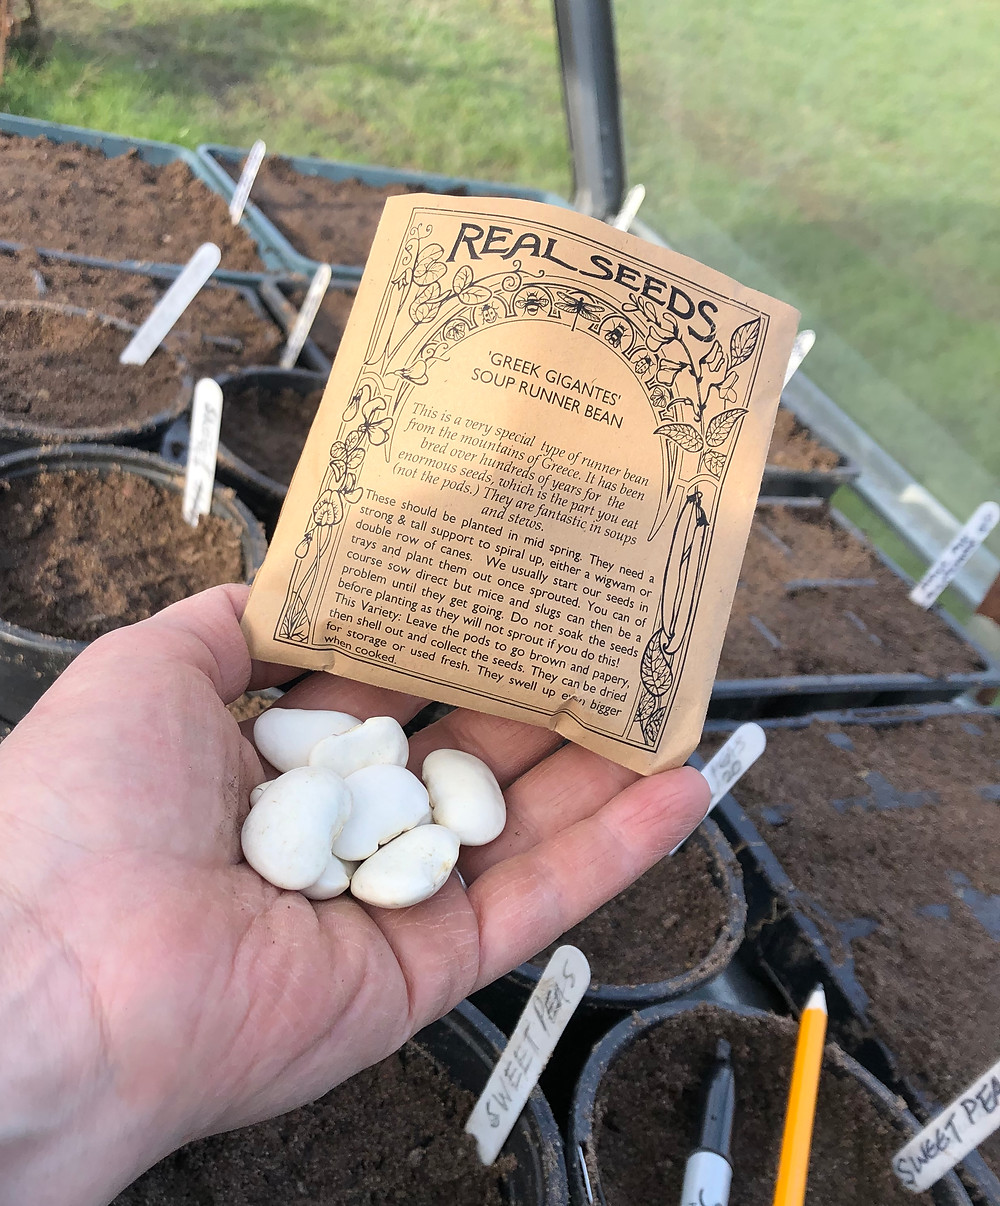 seeds, hand, greenhouse, outdoors, gardening